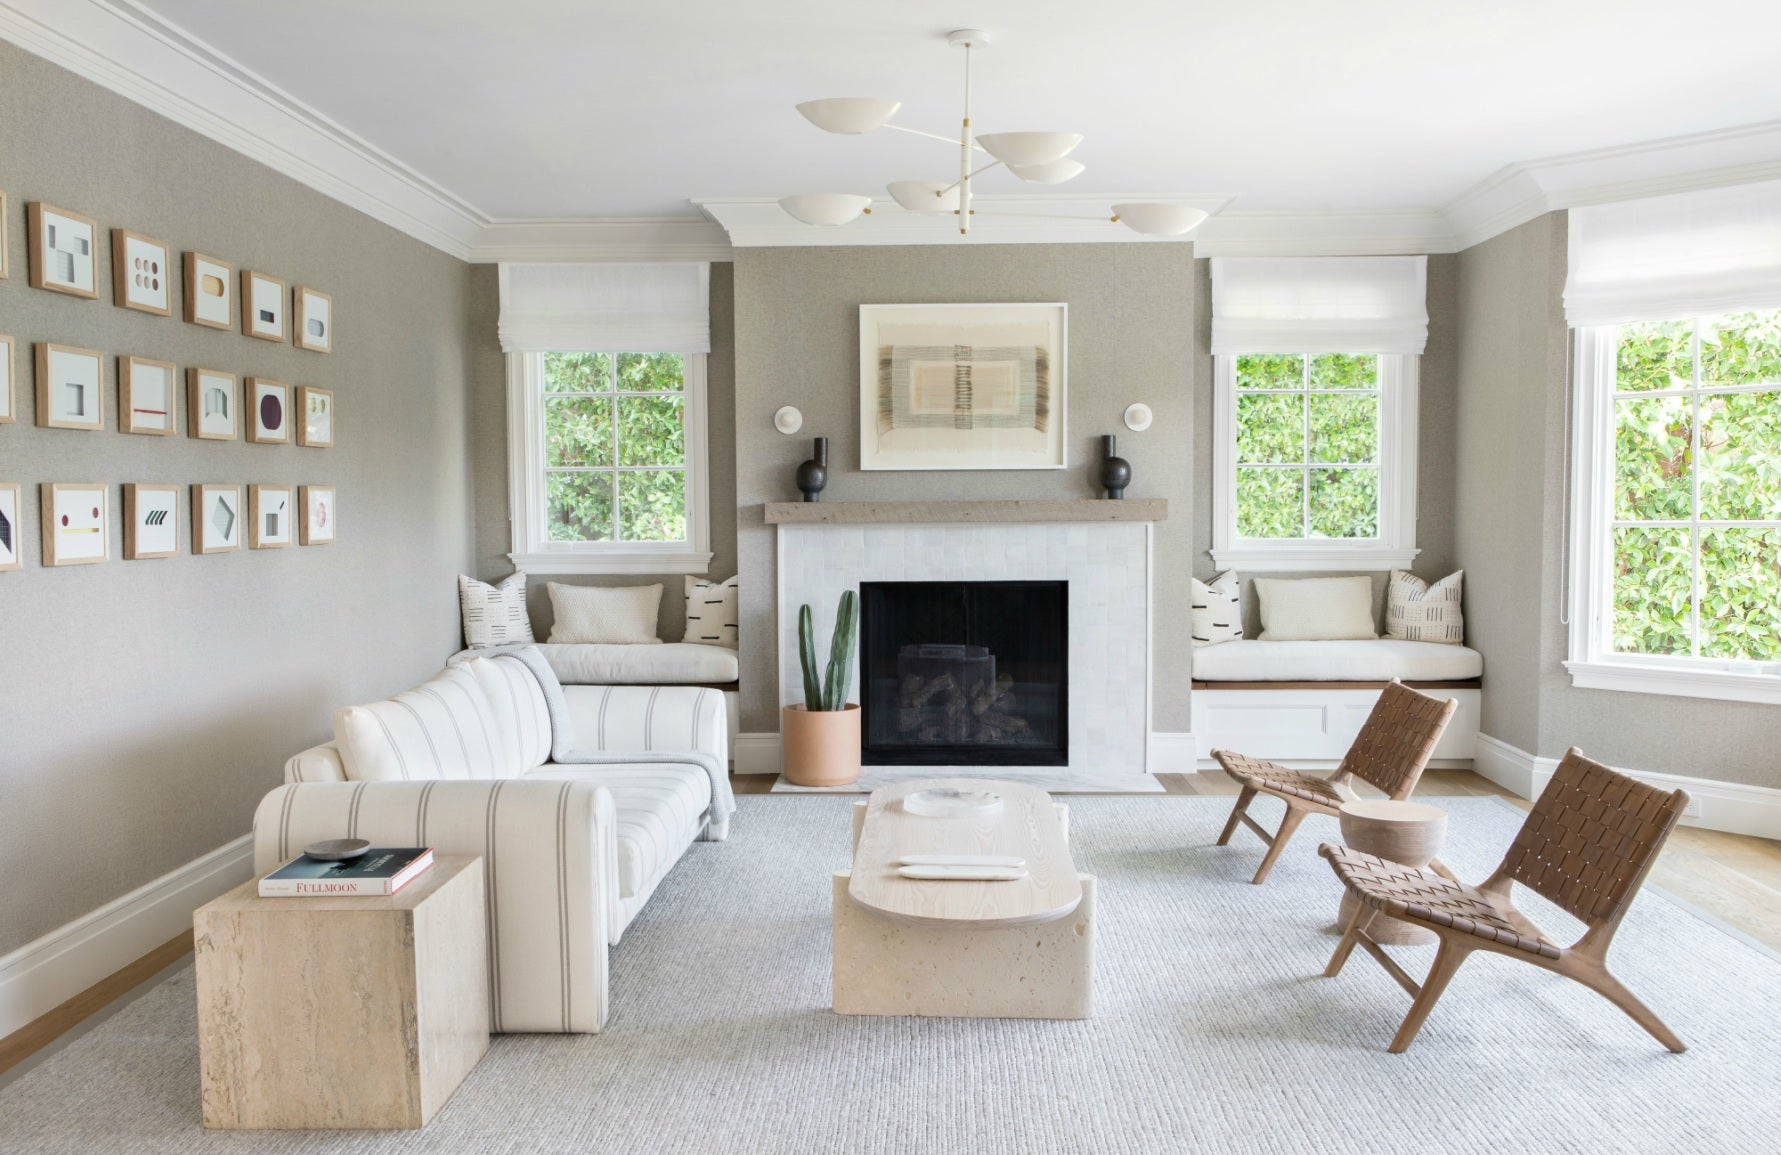 Spring Living Room Ideas | Rearrange Your Furniture | Interior design by Chango & Co. | LuxDeco.com